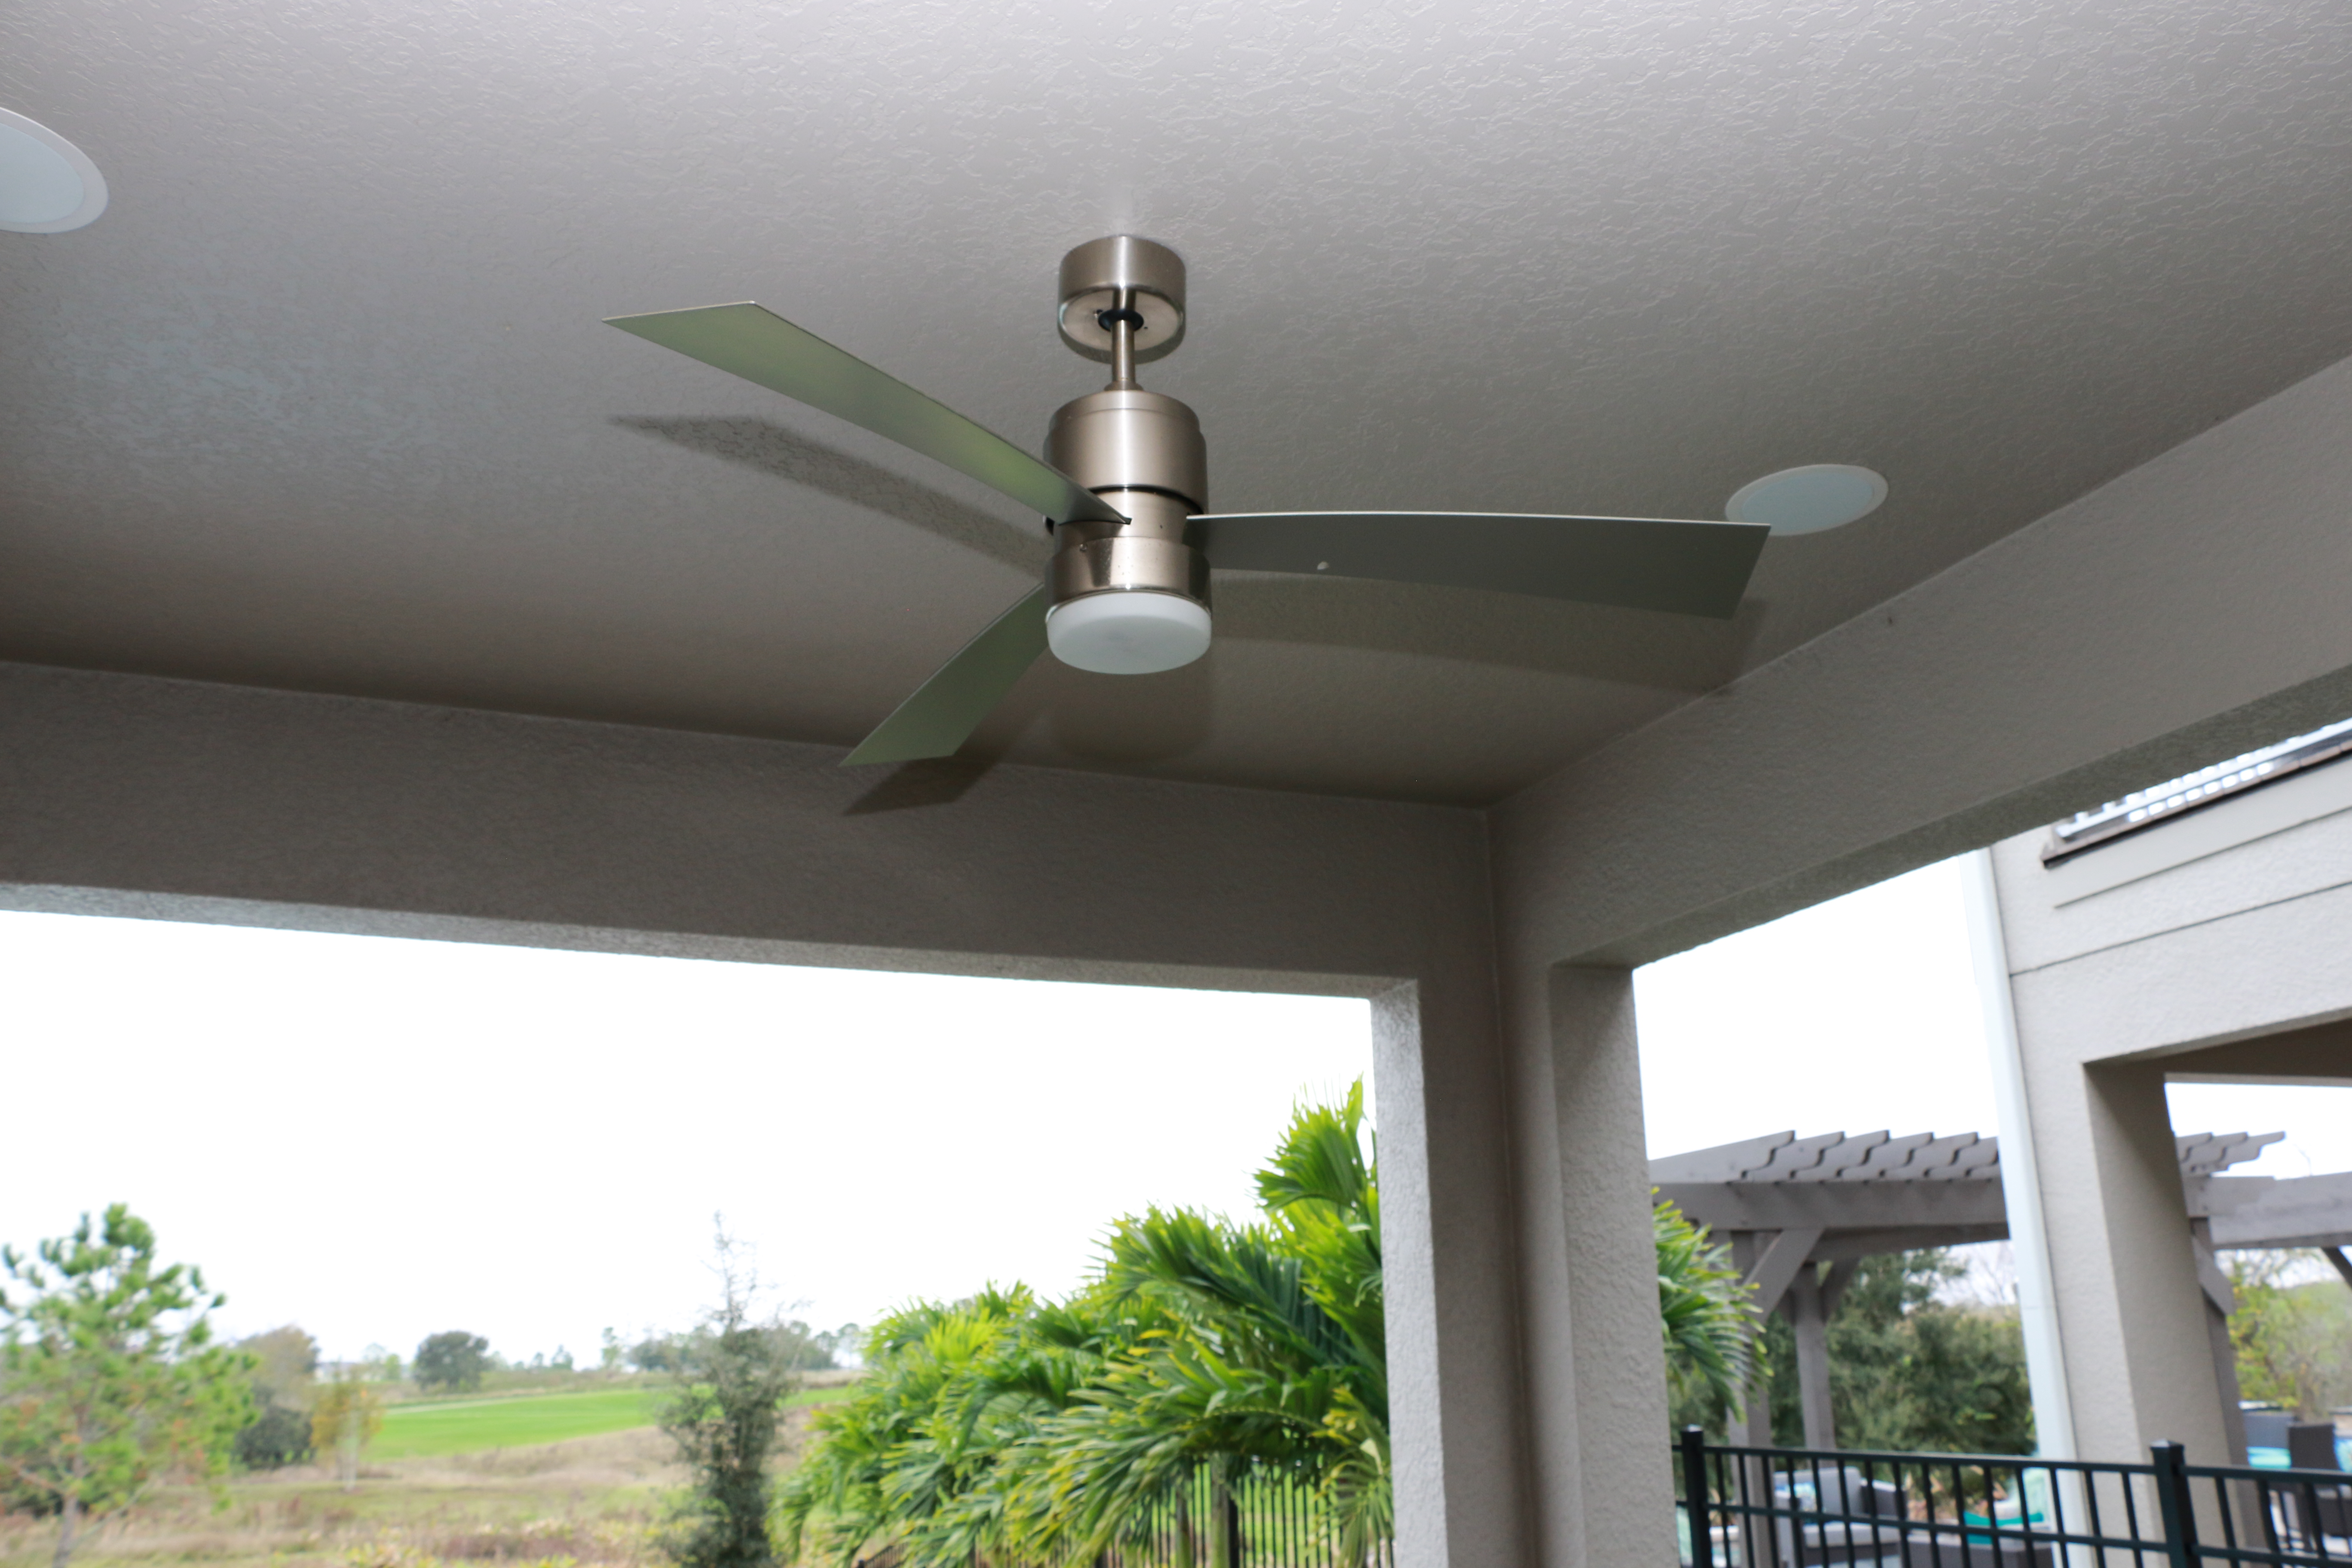 Orlando electric top 3 reasons to install ceiling fans for homeowners living in central florida cool air is a year round must have with the hot tropical climate home ac units have to work extra hard to keep aloadofball Choice Image